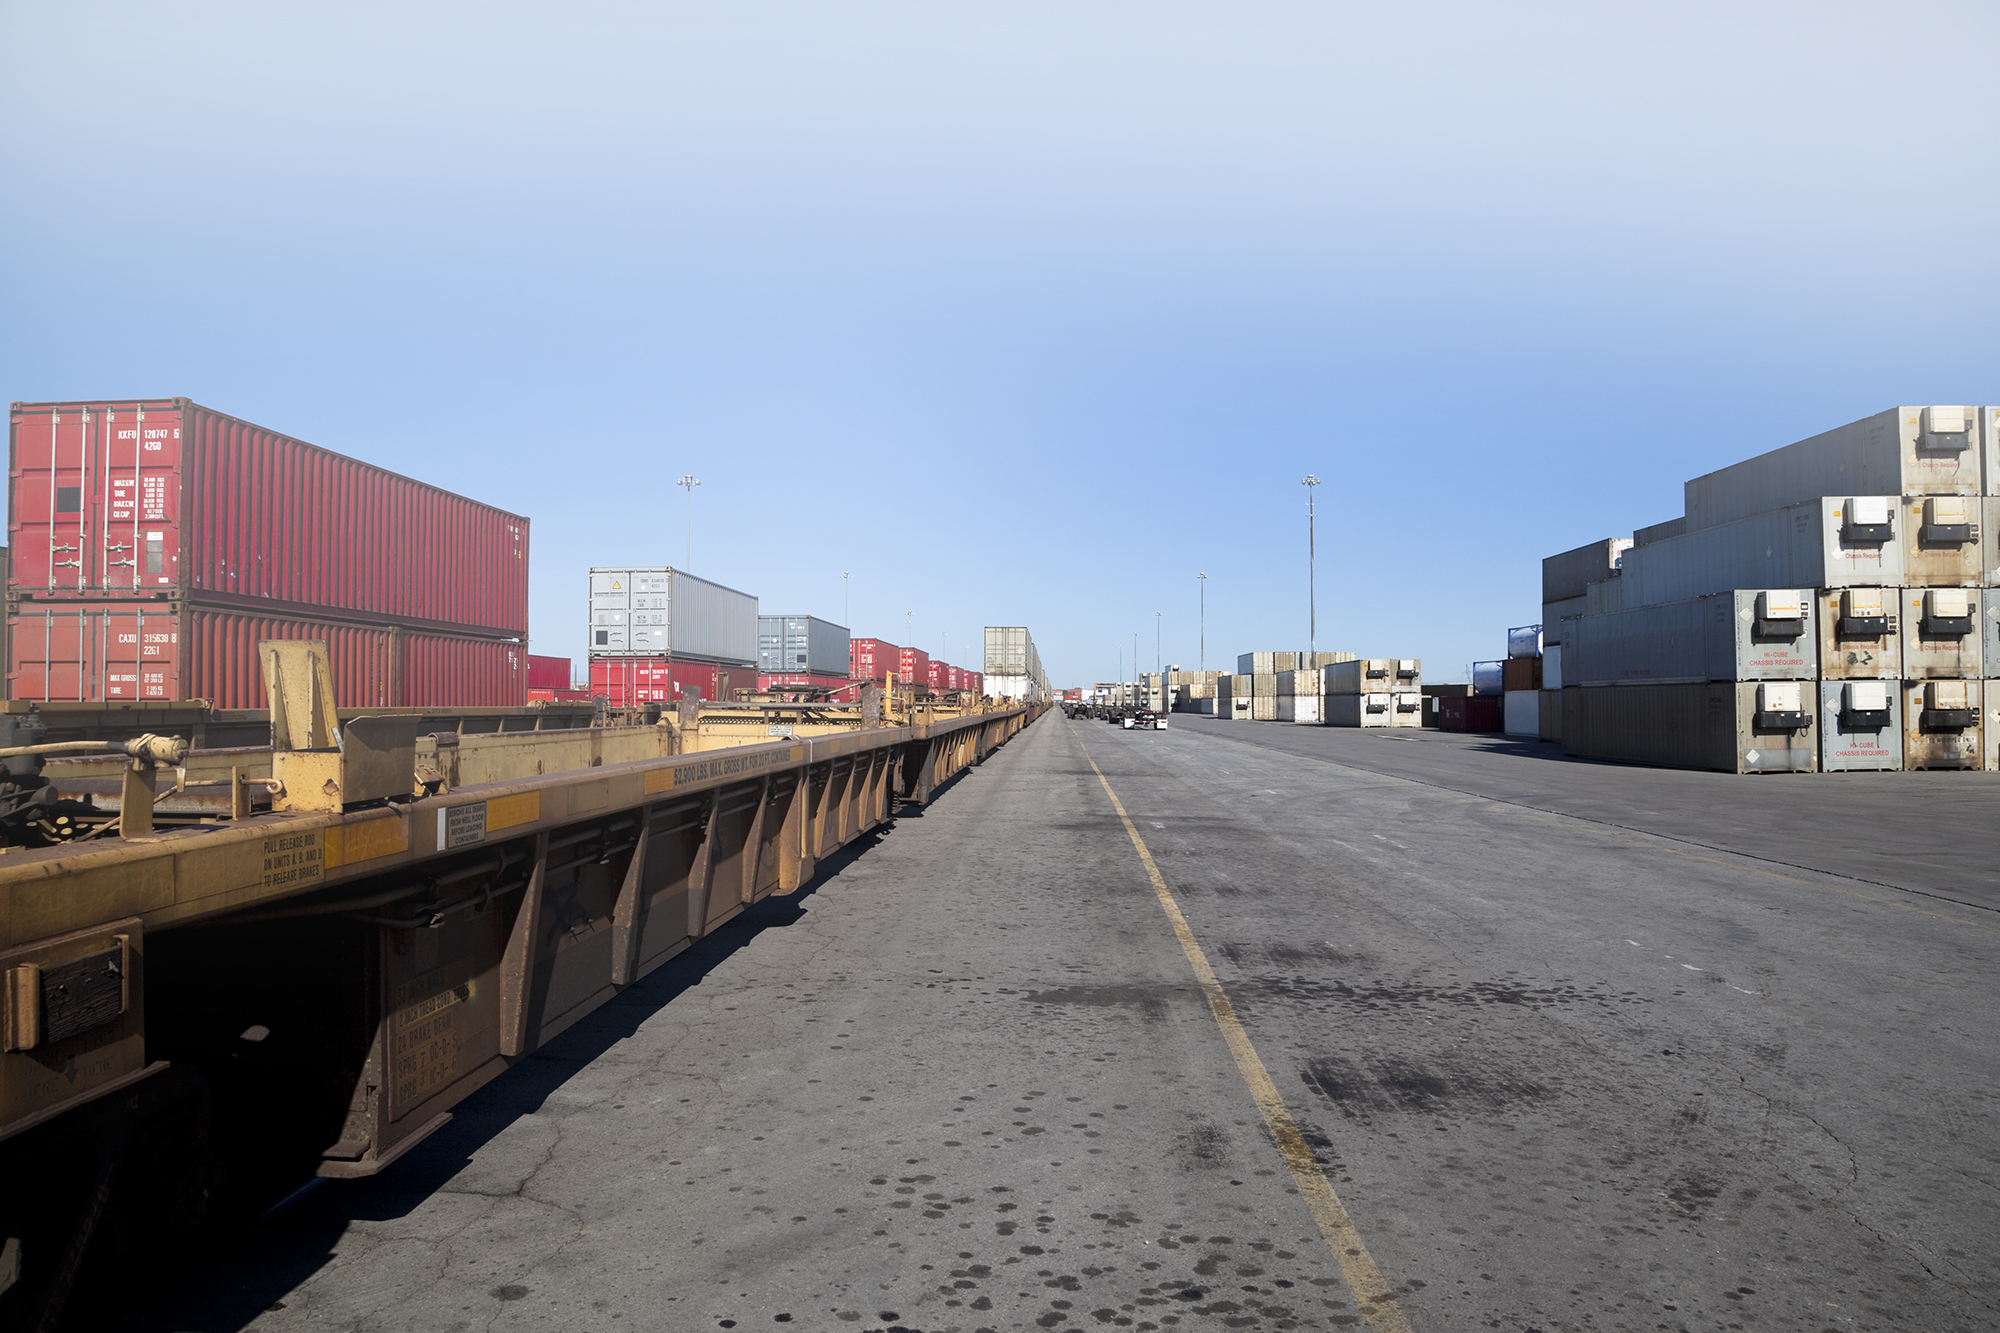 Intermodal Containers On a Train